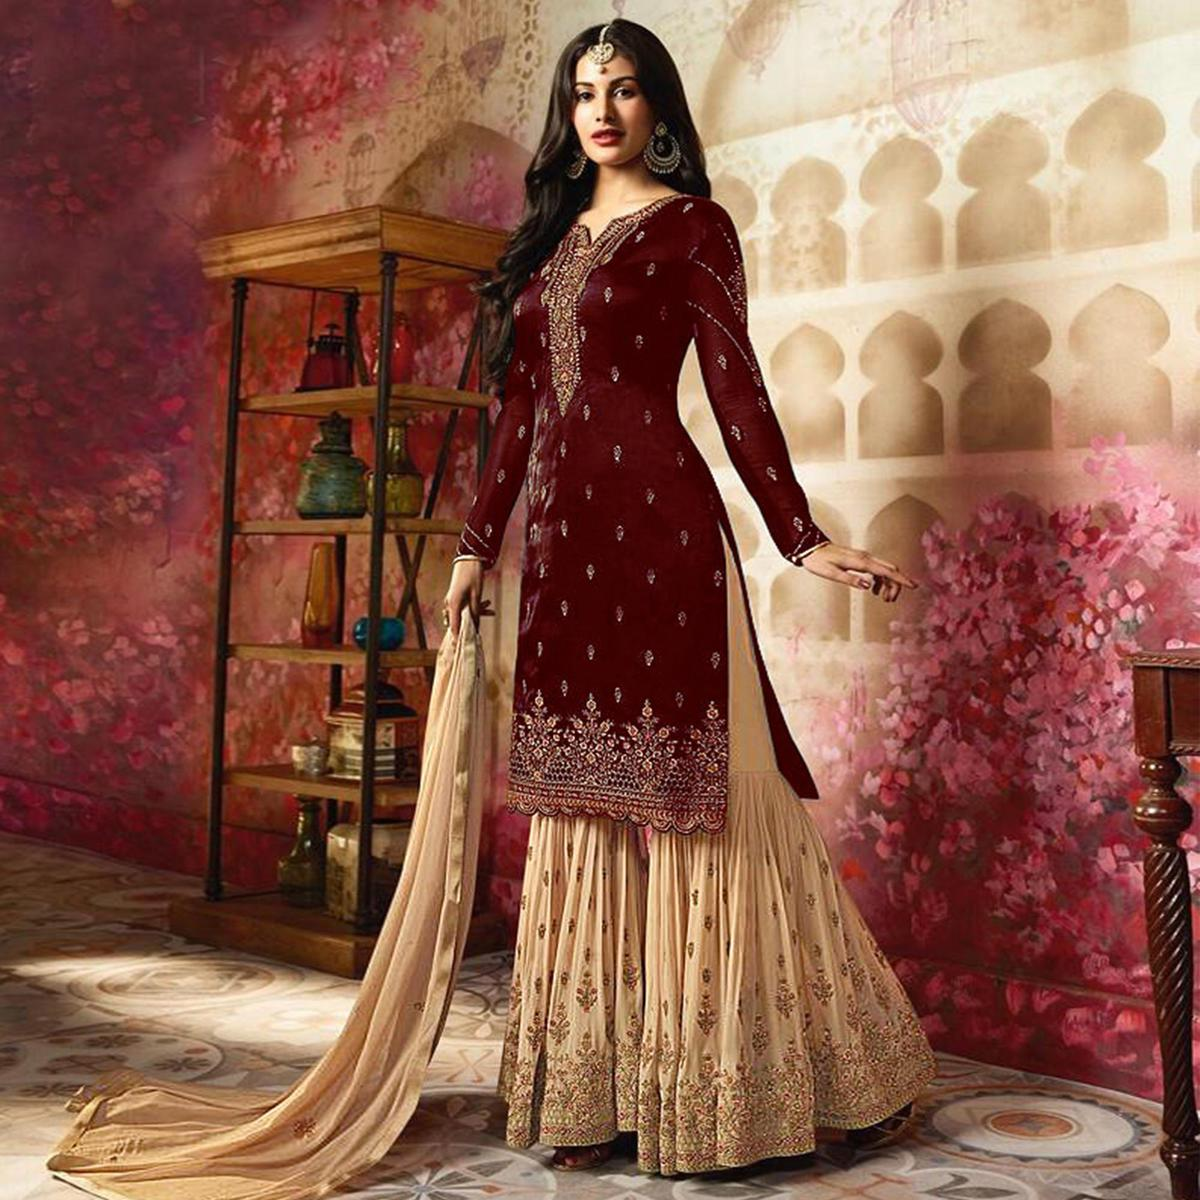 b82c2a4e195 Buy Trendy Maroon Colored Partywear Embroidered Georgette Palazzo Suit For  womens online India